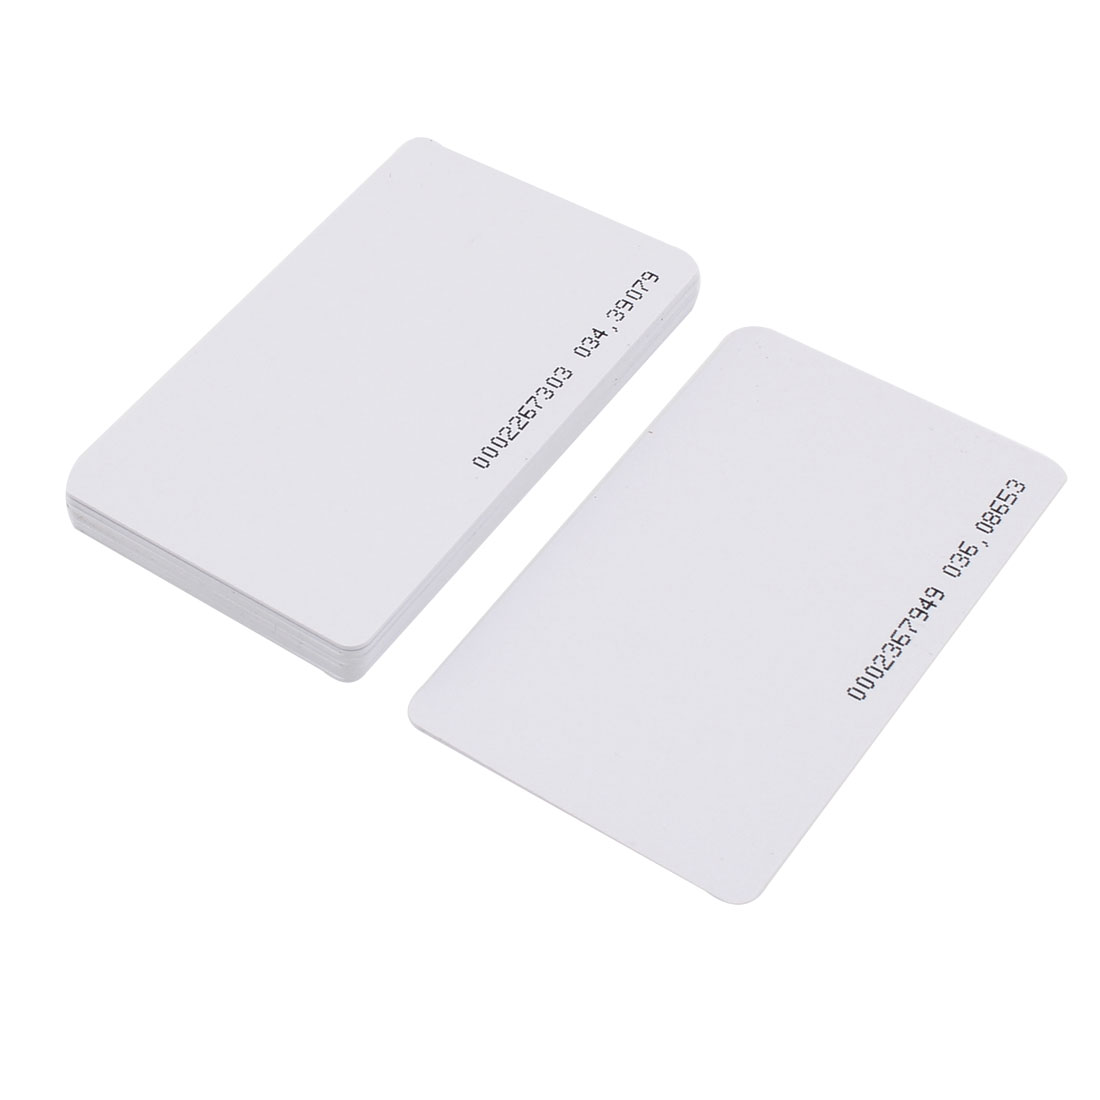 10pcs Contactless EM4100 125kHz RFID Proximity ID Smart Entry Access Card White